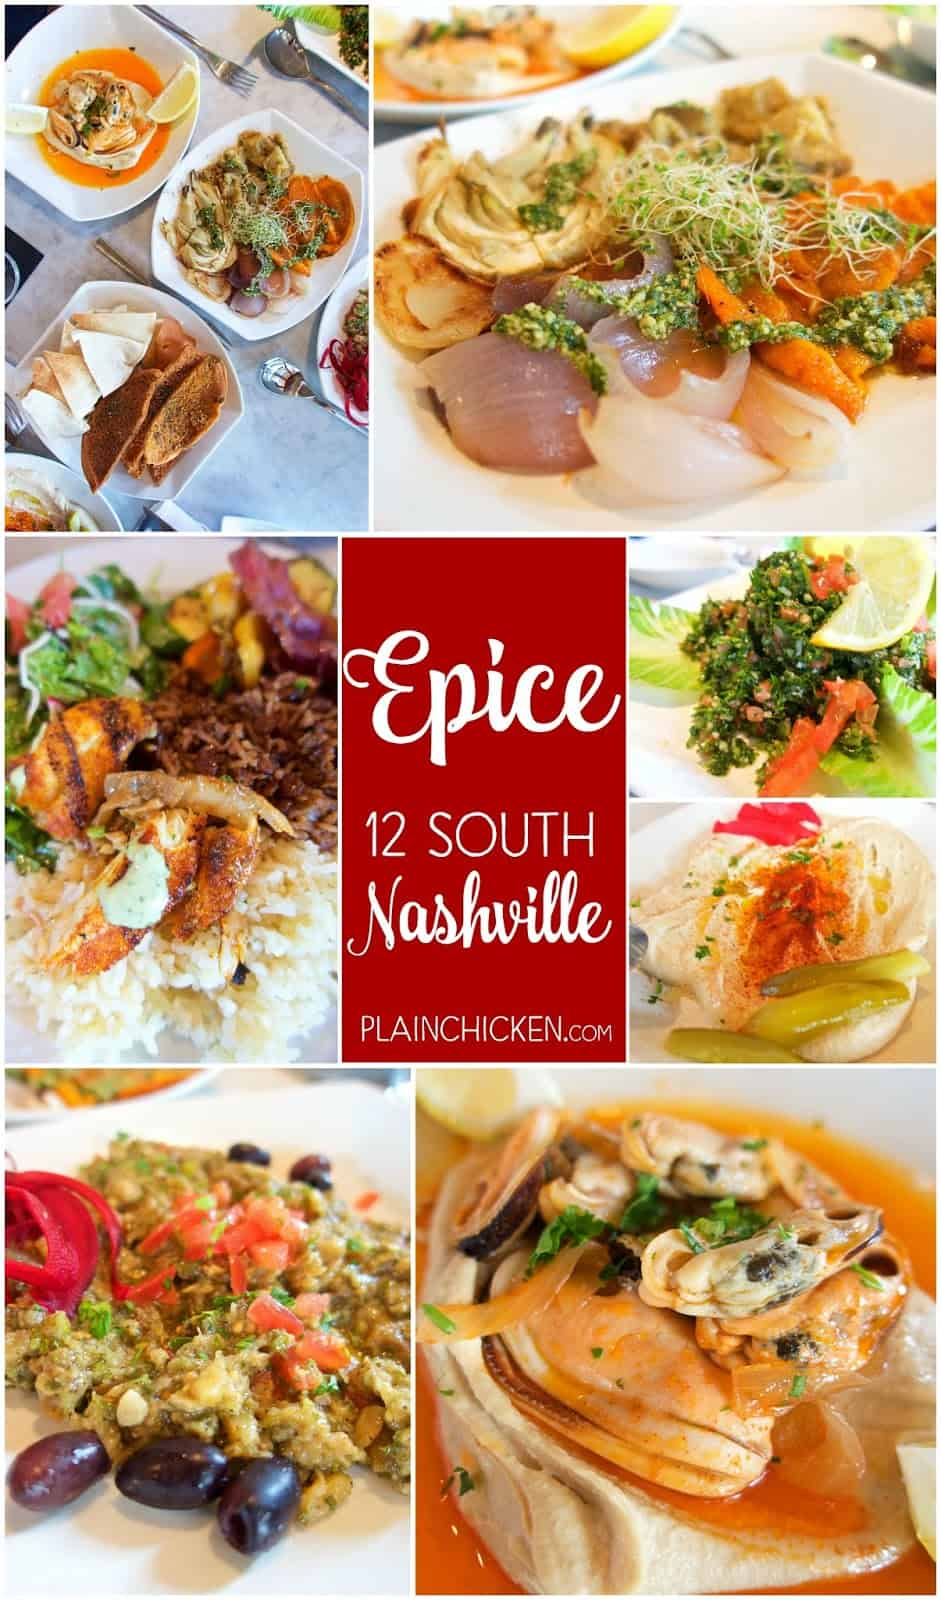 Epice in the 12 South neighborhood in Nashville - pice is a neighborhood bistro serving simple and authentic Lebanese foods that are reflective of Lebanon's flavorful Mediterranean cuisine.